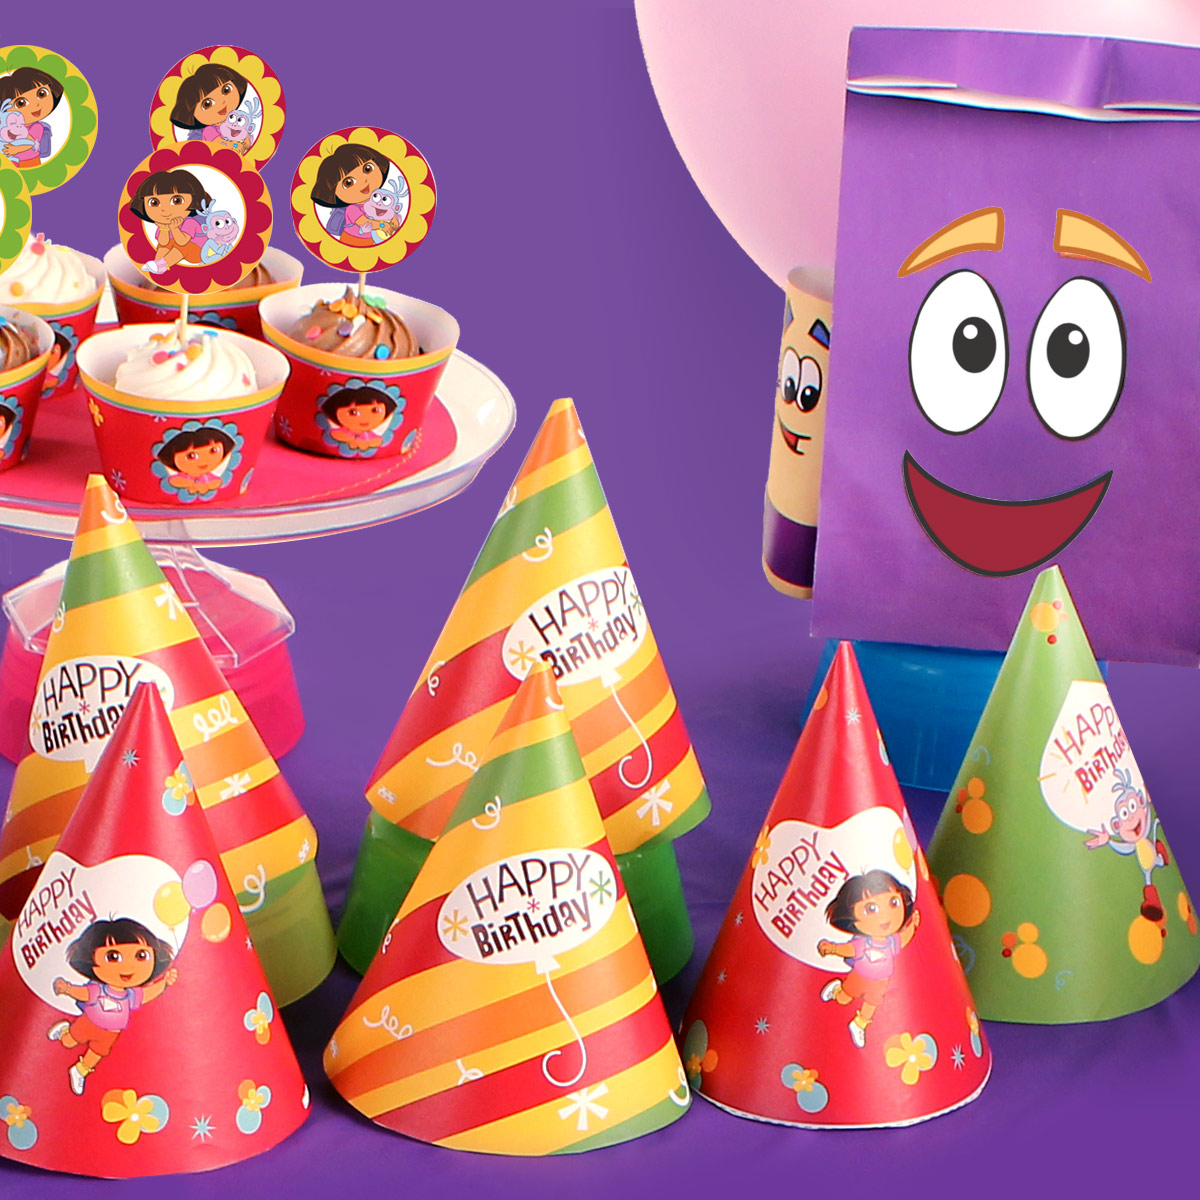 Dora Birthday Party Day Planner Nickelodeon Parents